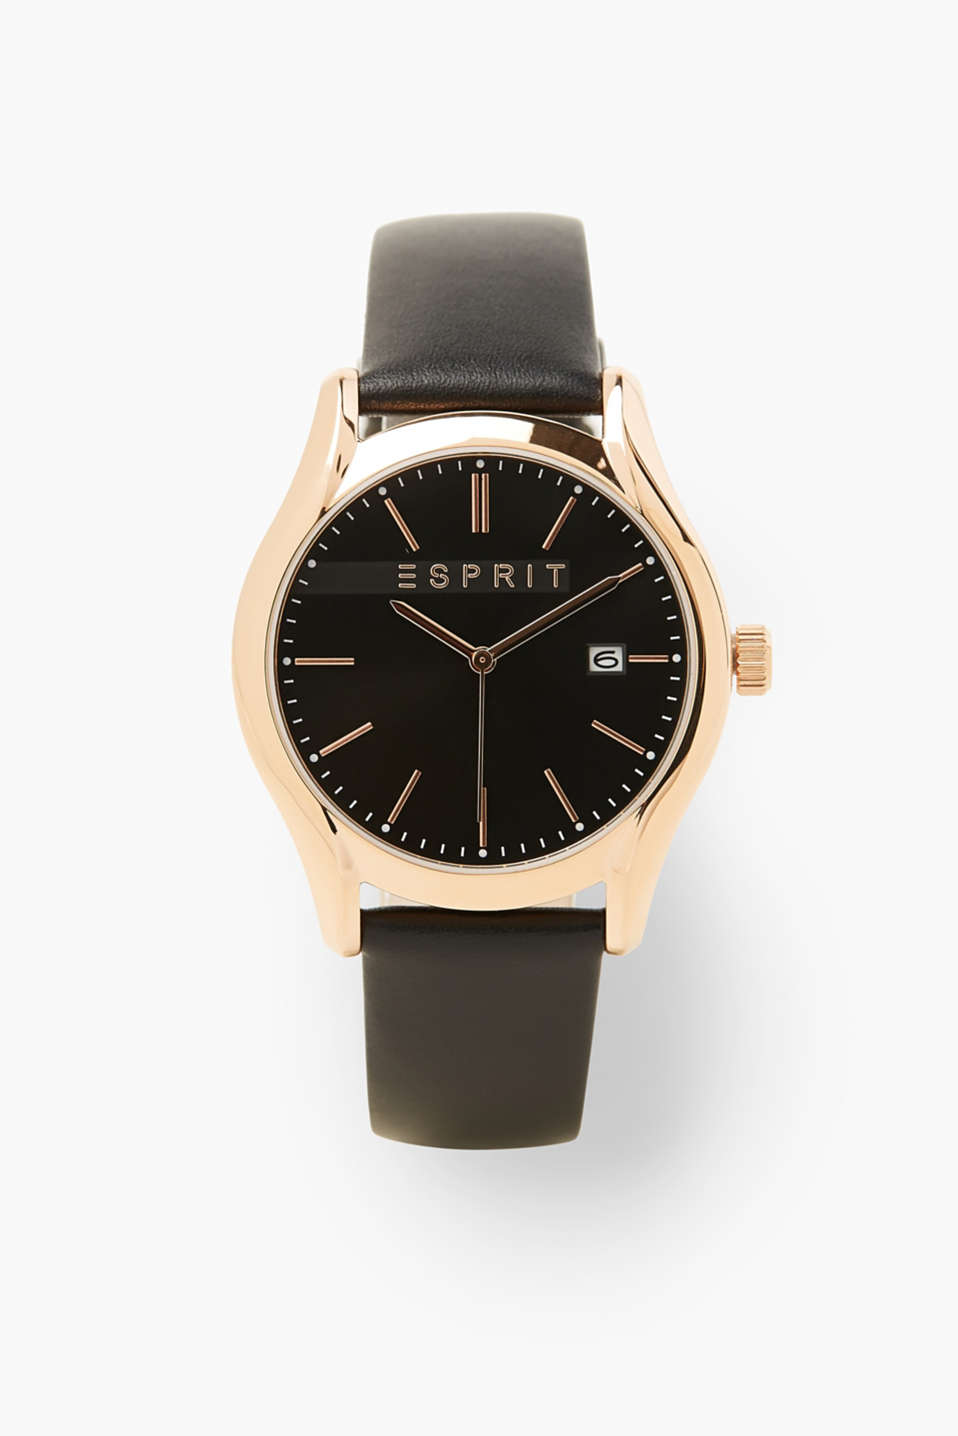 Black and gold! This classic watch for men features a timeless design